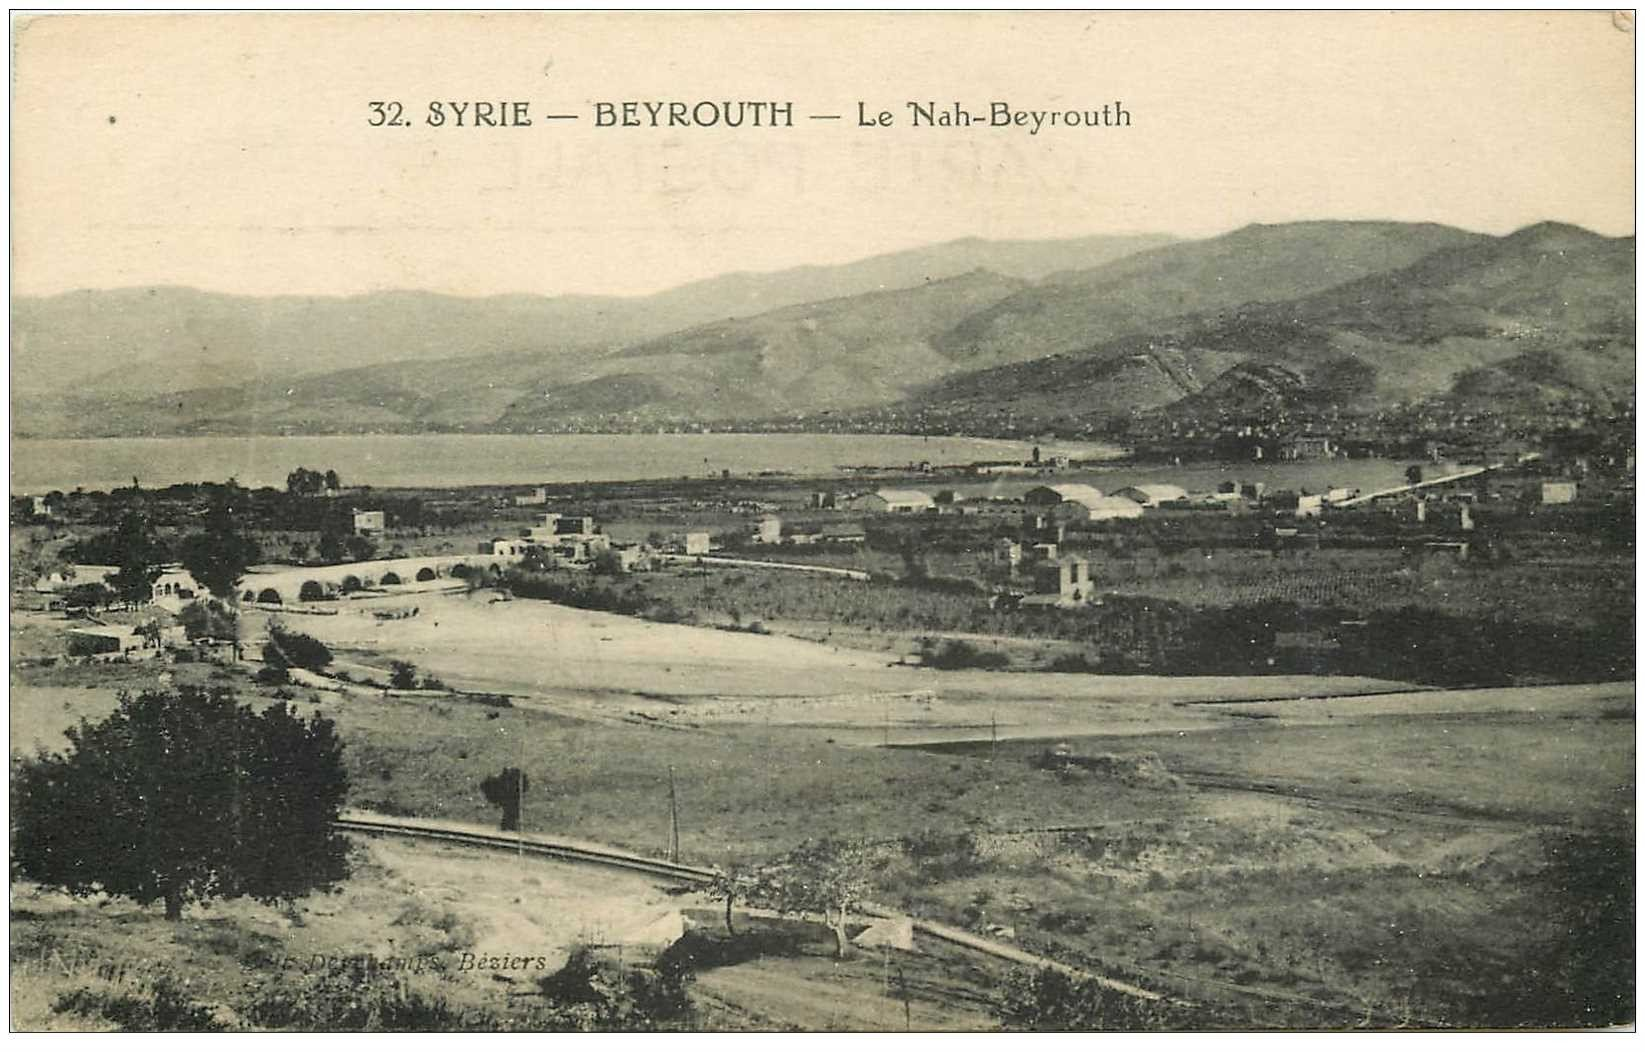 carte postale ancienne Liban Syrie. BEYROUTH. Le Nah Beyrouth